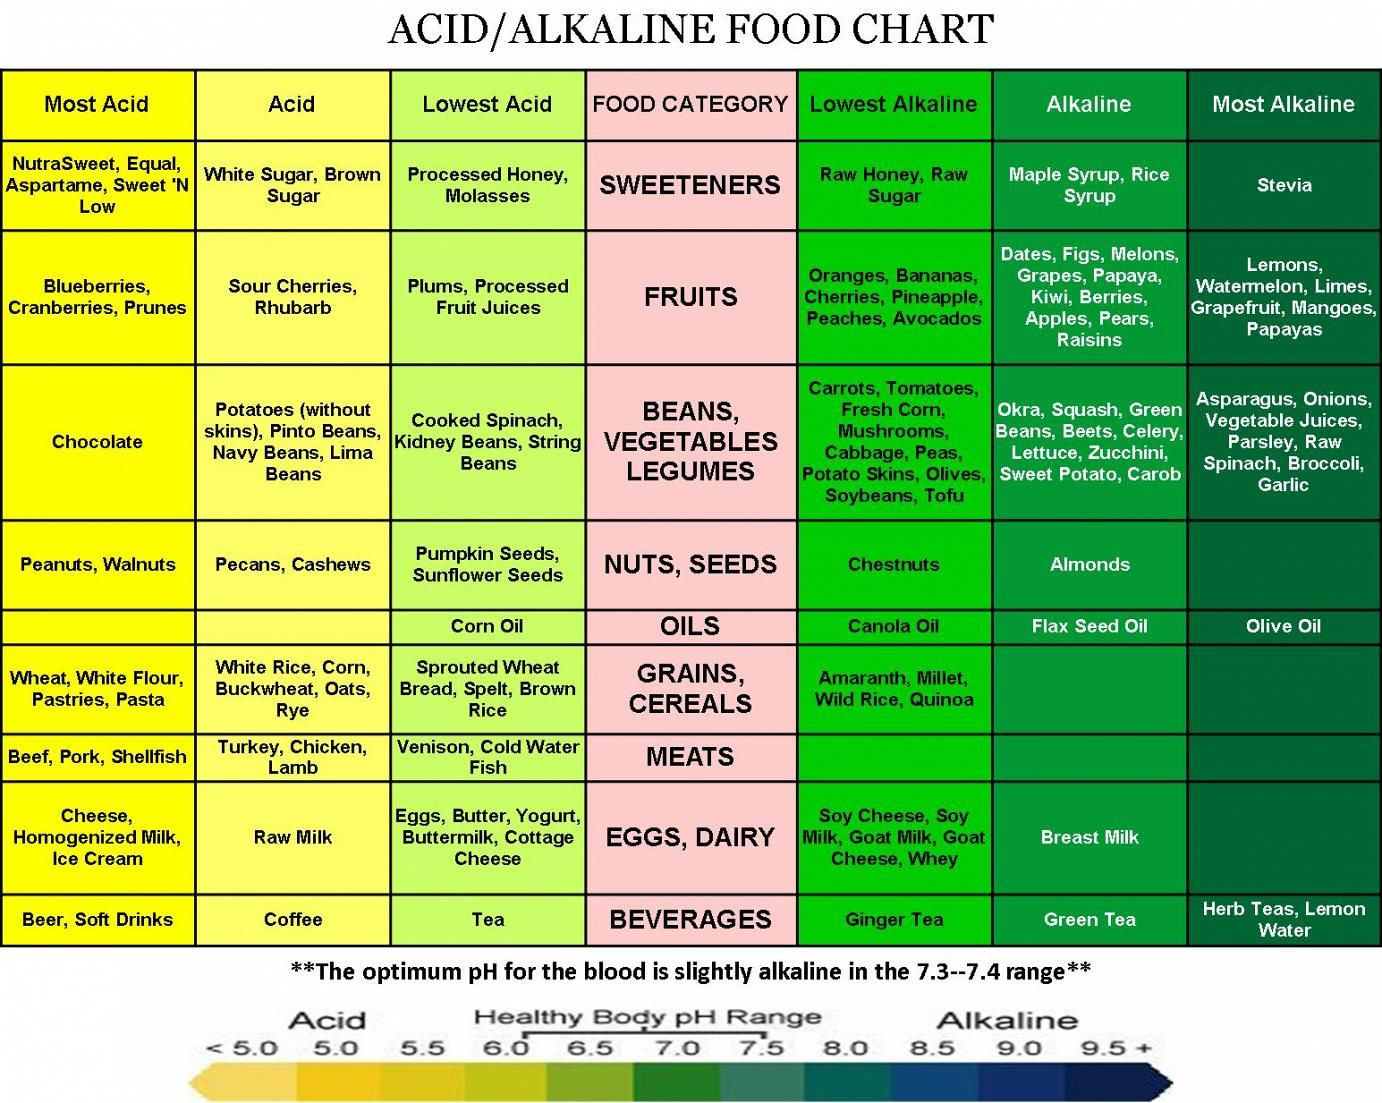 10 Symptoms That Your Body May Be Acidic Alkaline foods